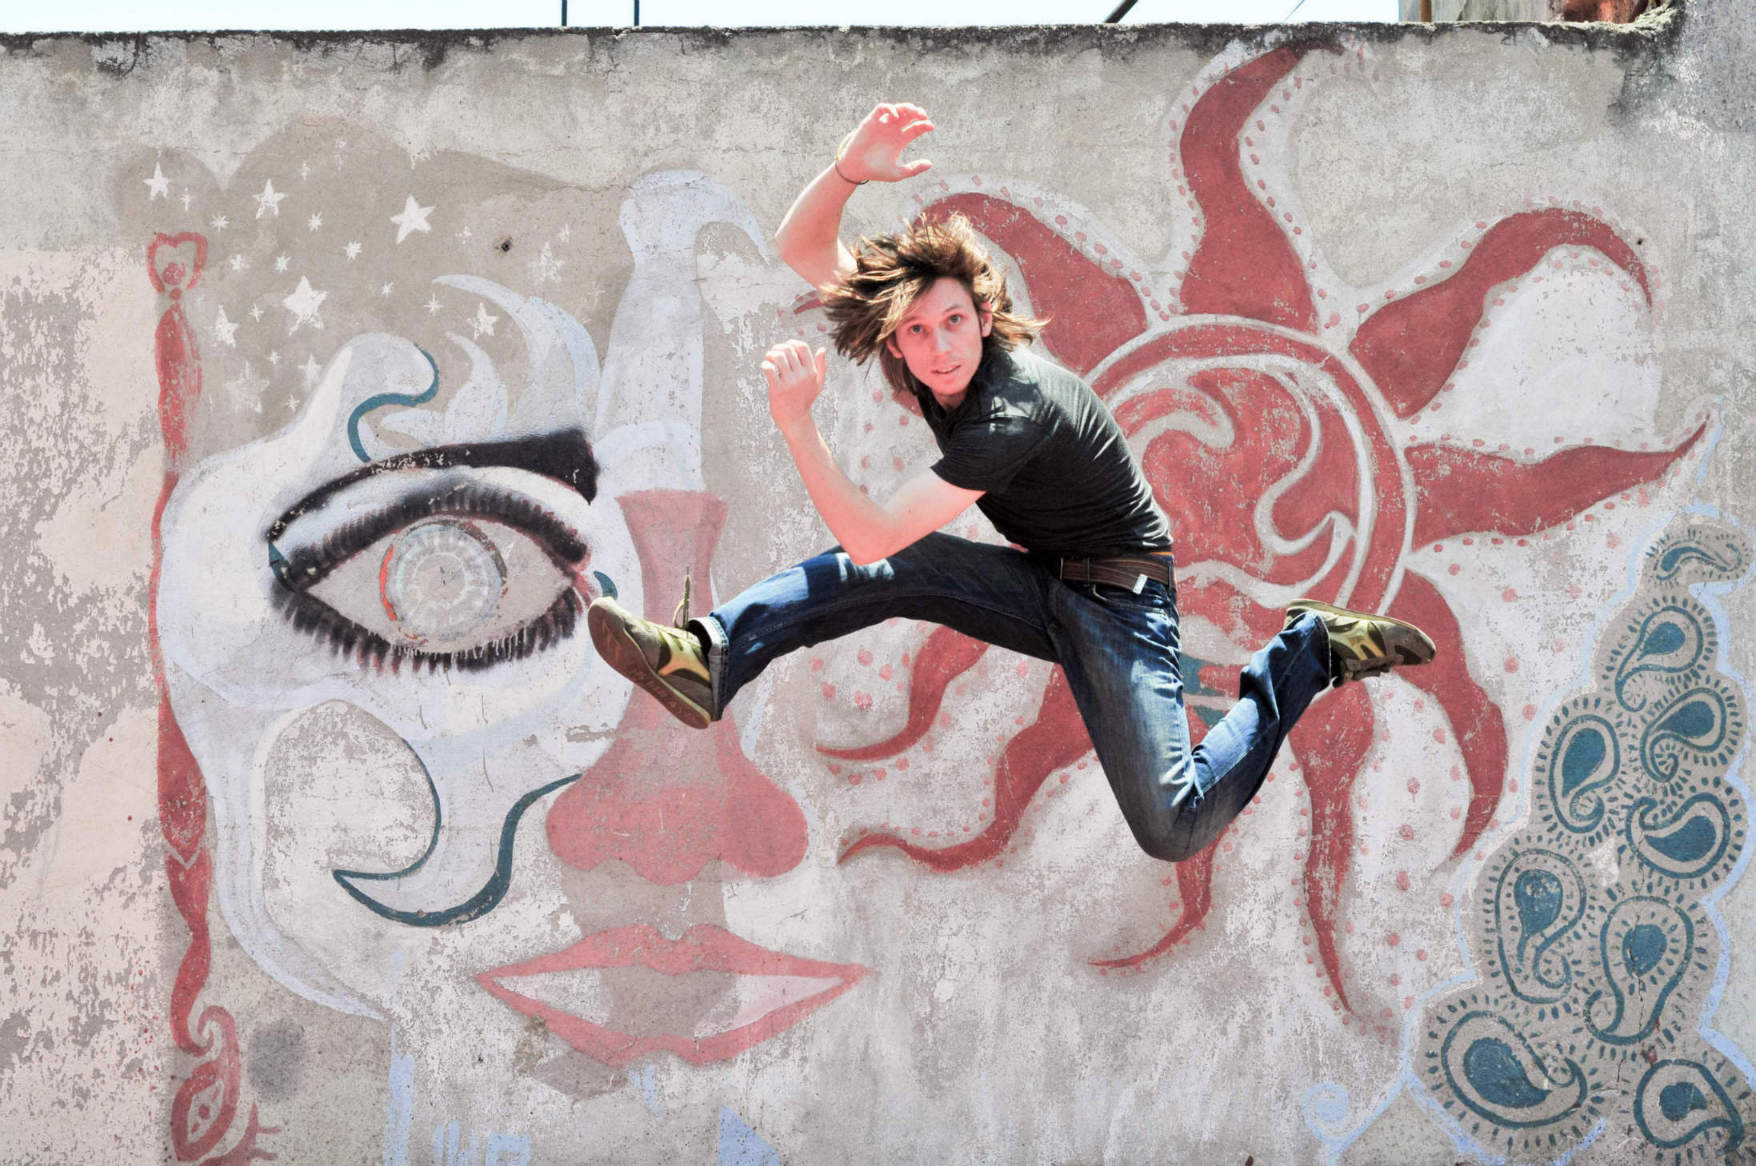 Man Jumping With Rough Wall__1428400083_124.6.230.5